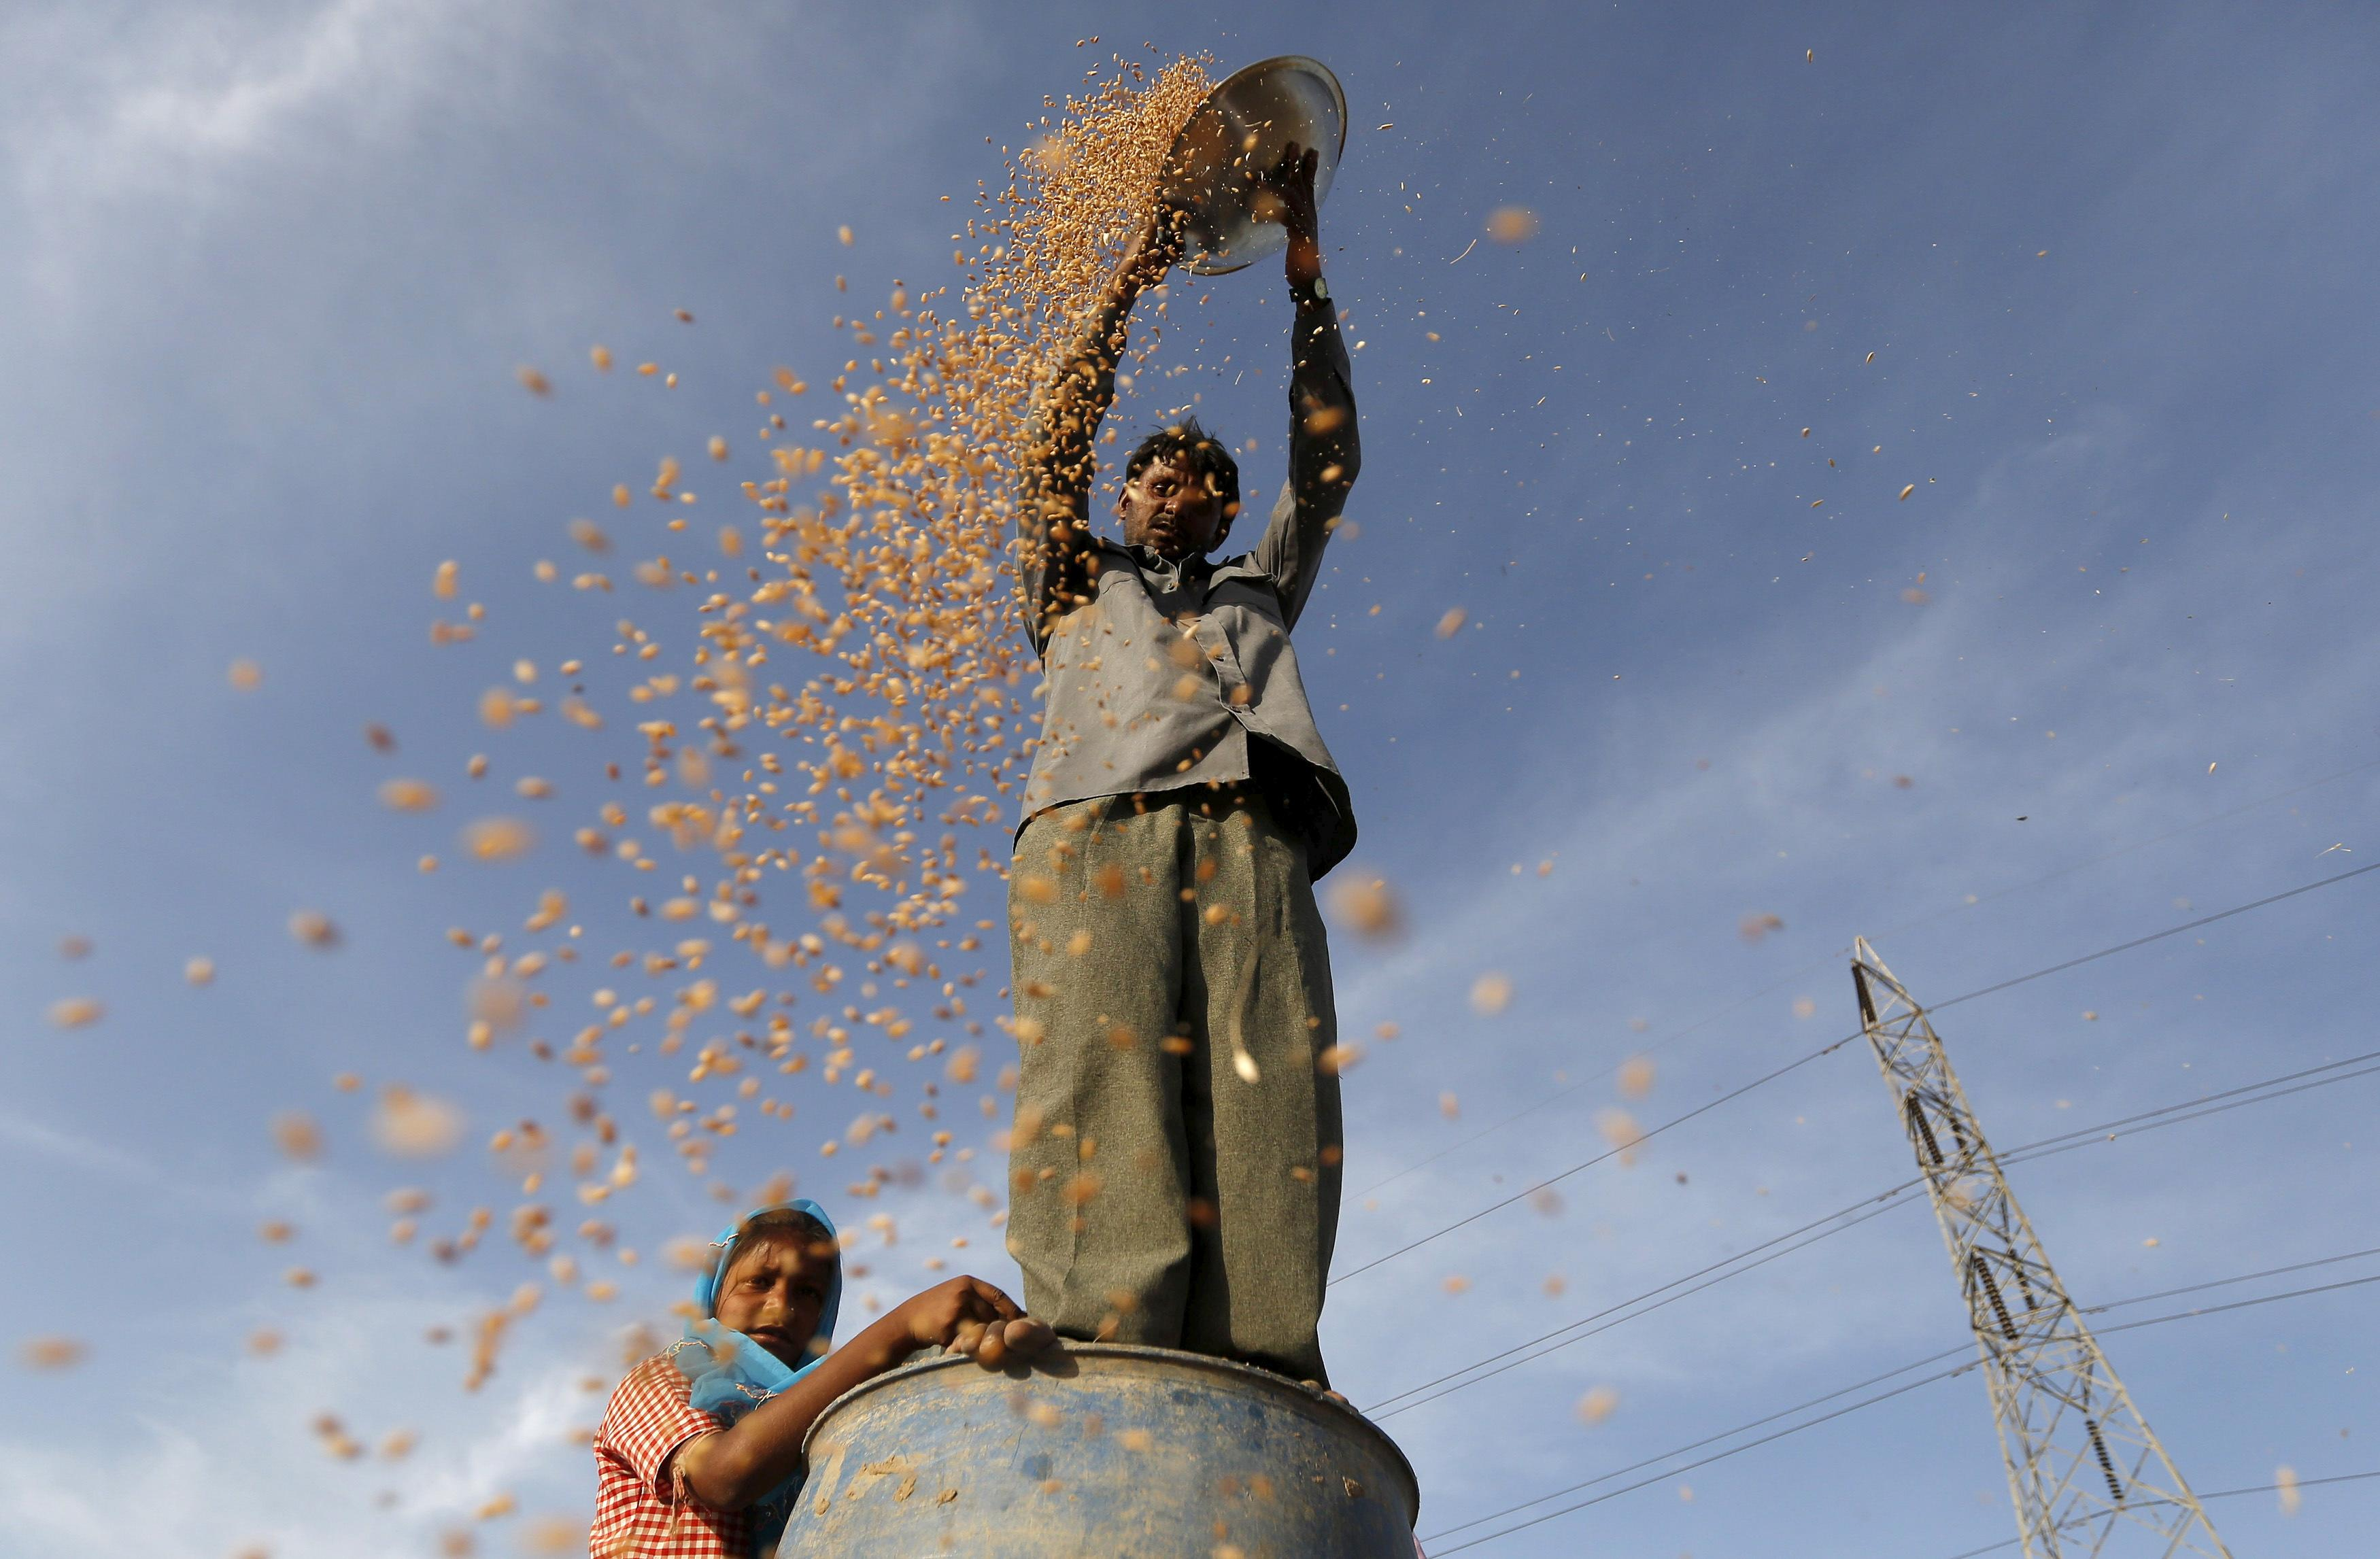 India raises wheat buying price, makes exports unviable